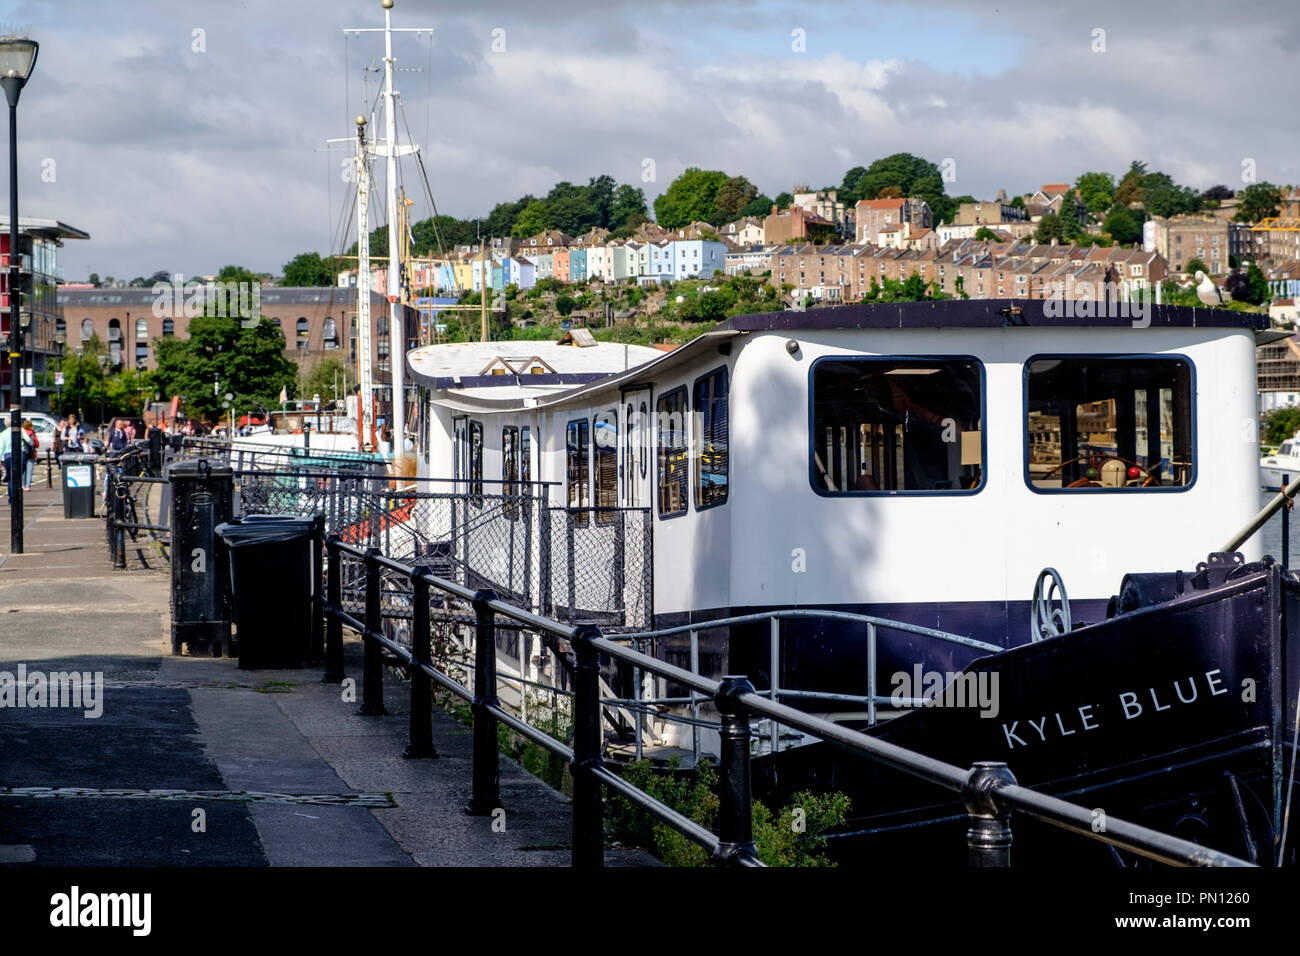 Kyle Blue is a waterborne Hostel in Bristol Harbour, Bristol england UK - Stock Image